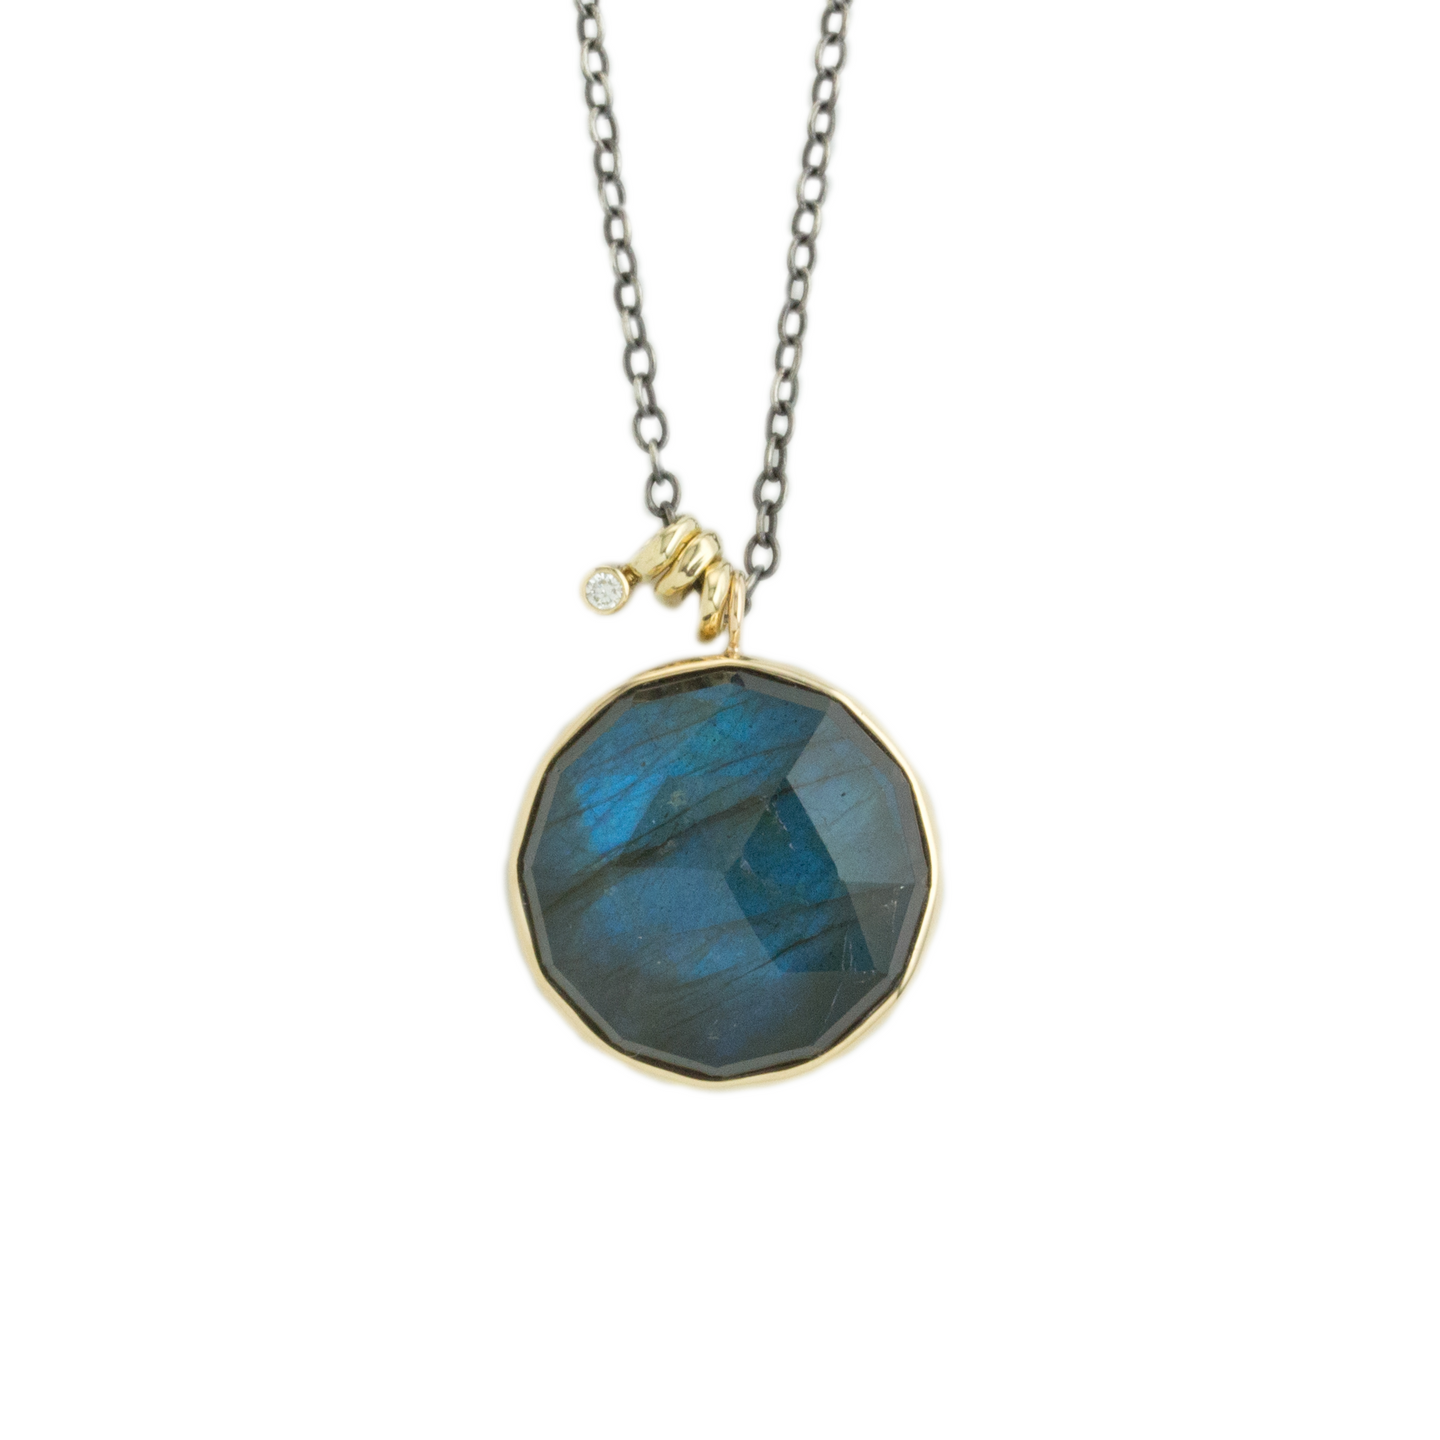 Oxidized Sterling & 14K Gold Labradorite & Diamond Necklace